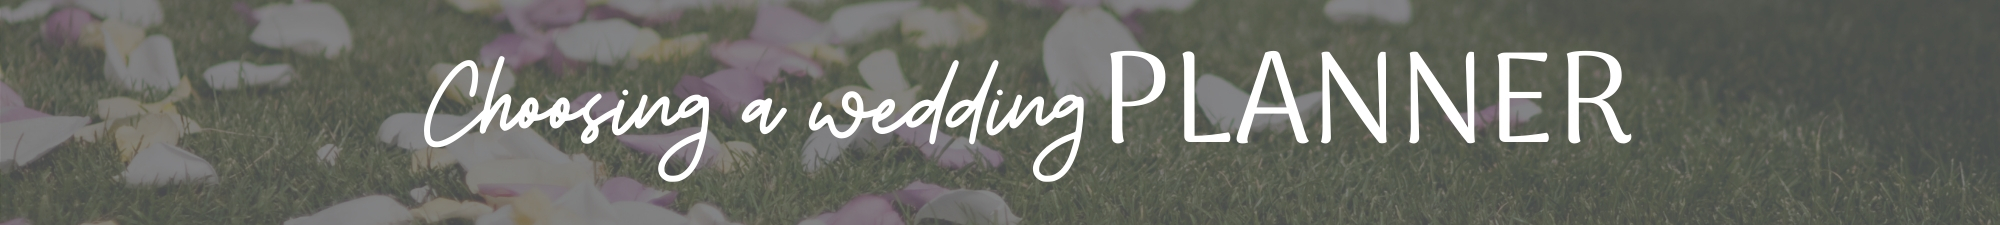 Choosing a wedding planner